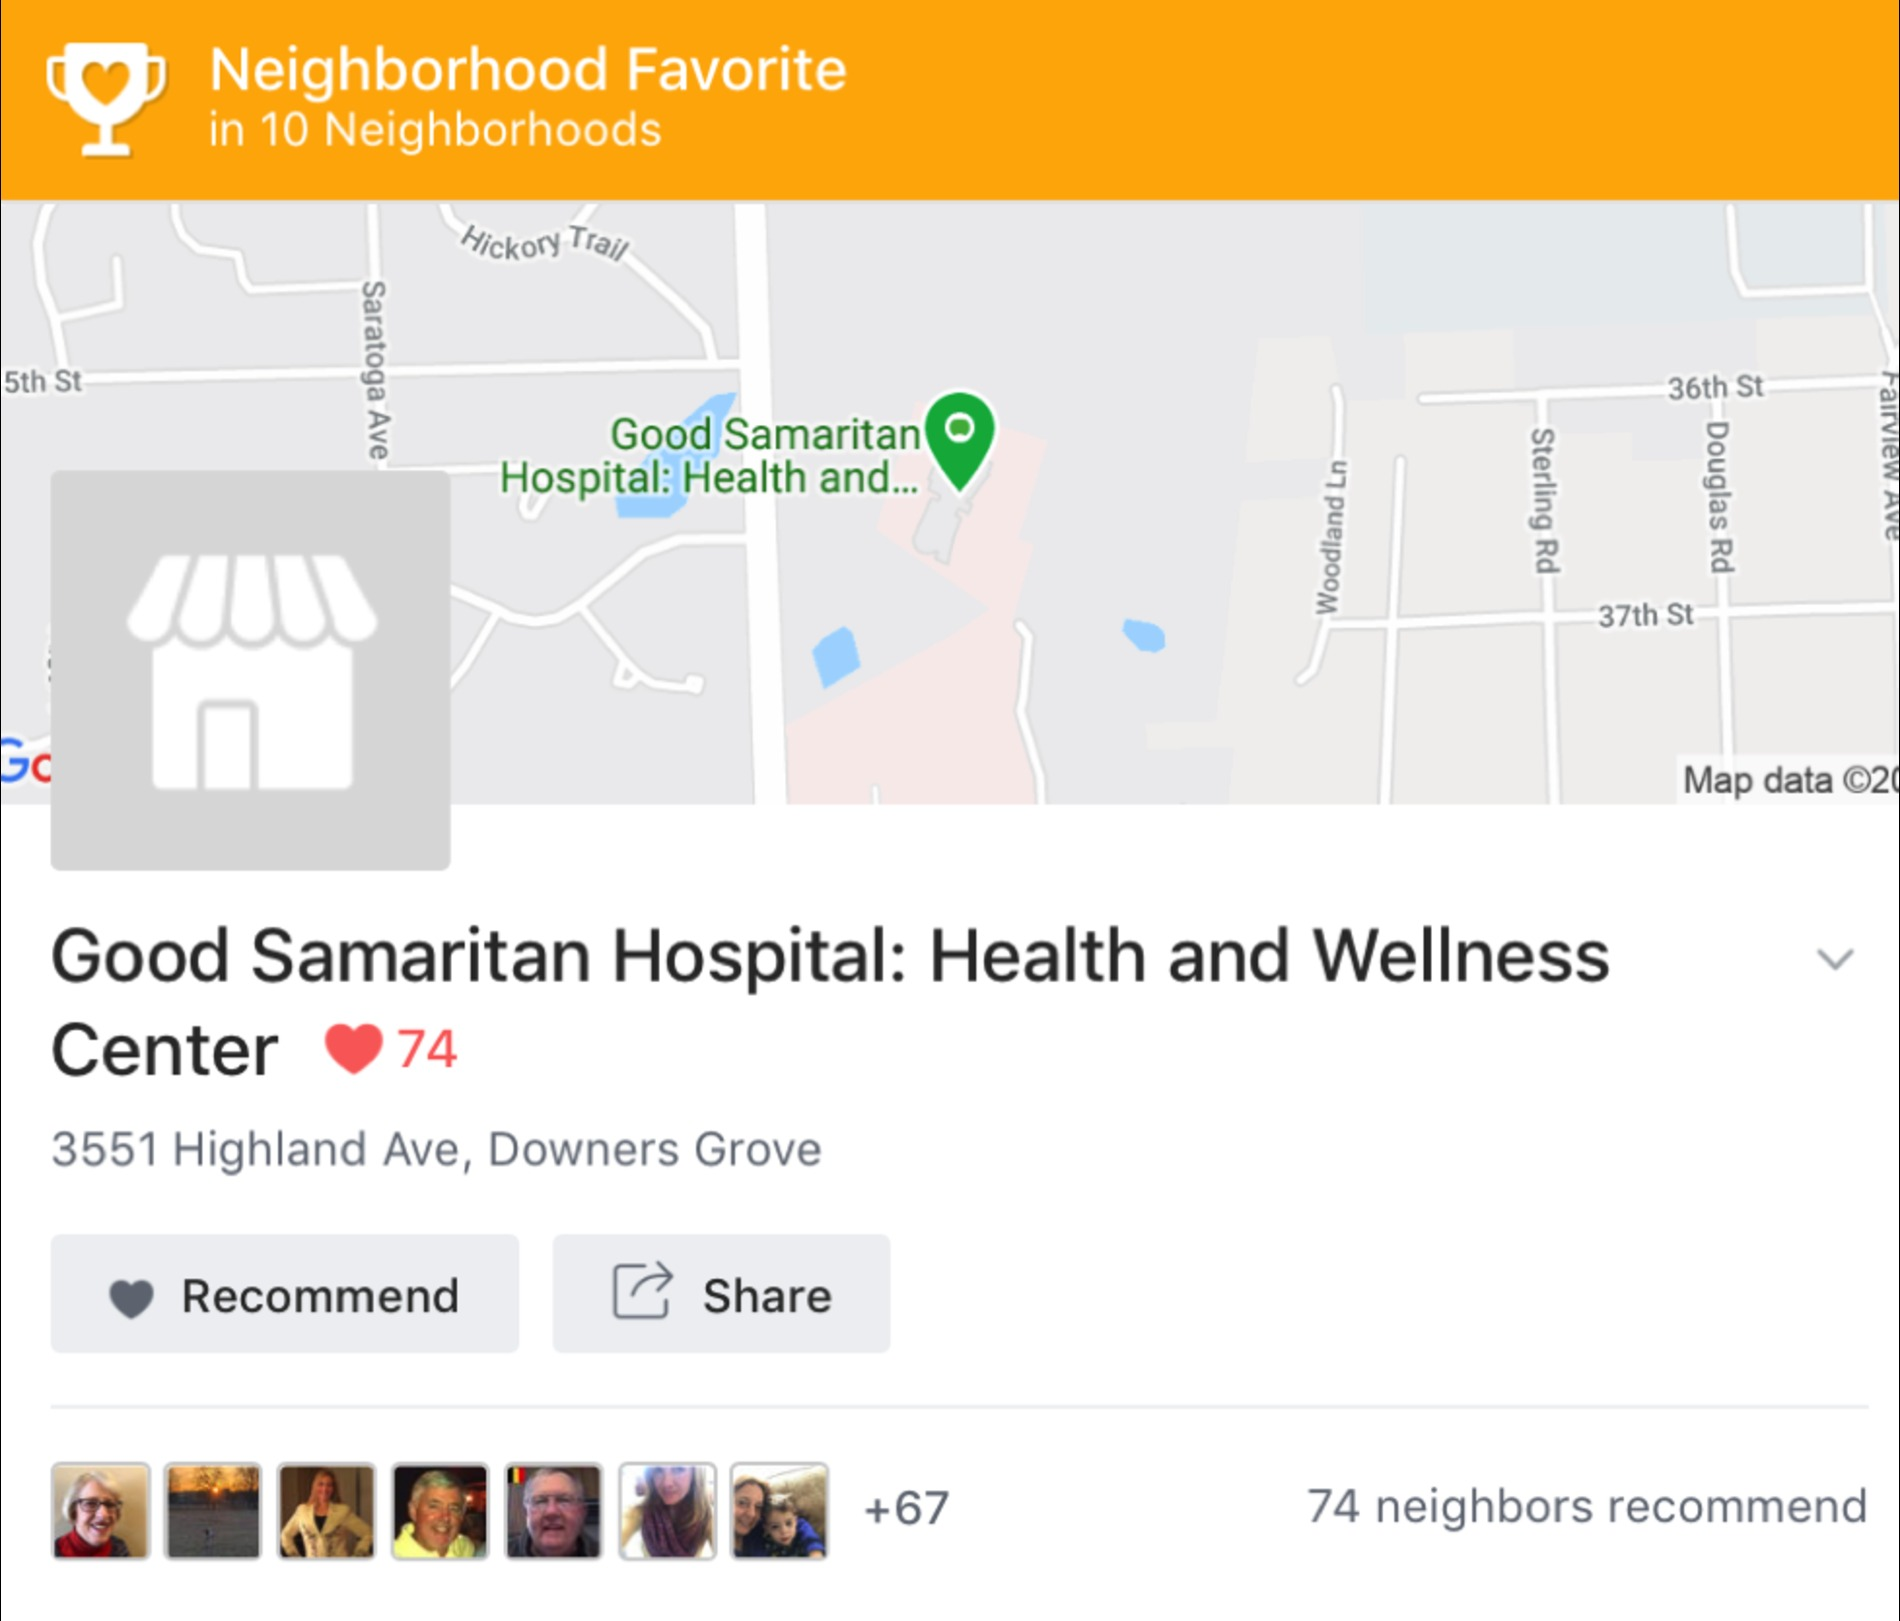 Next-door app showing Neighborhood Favorite.